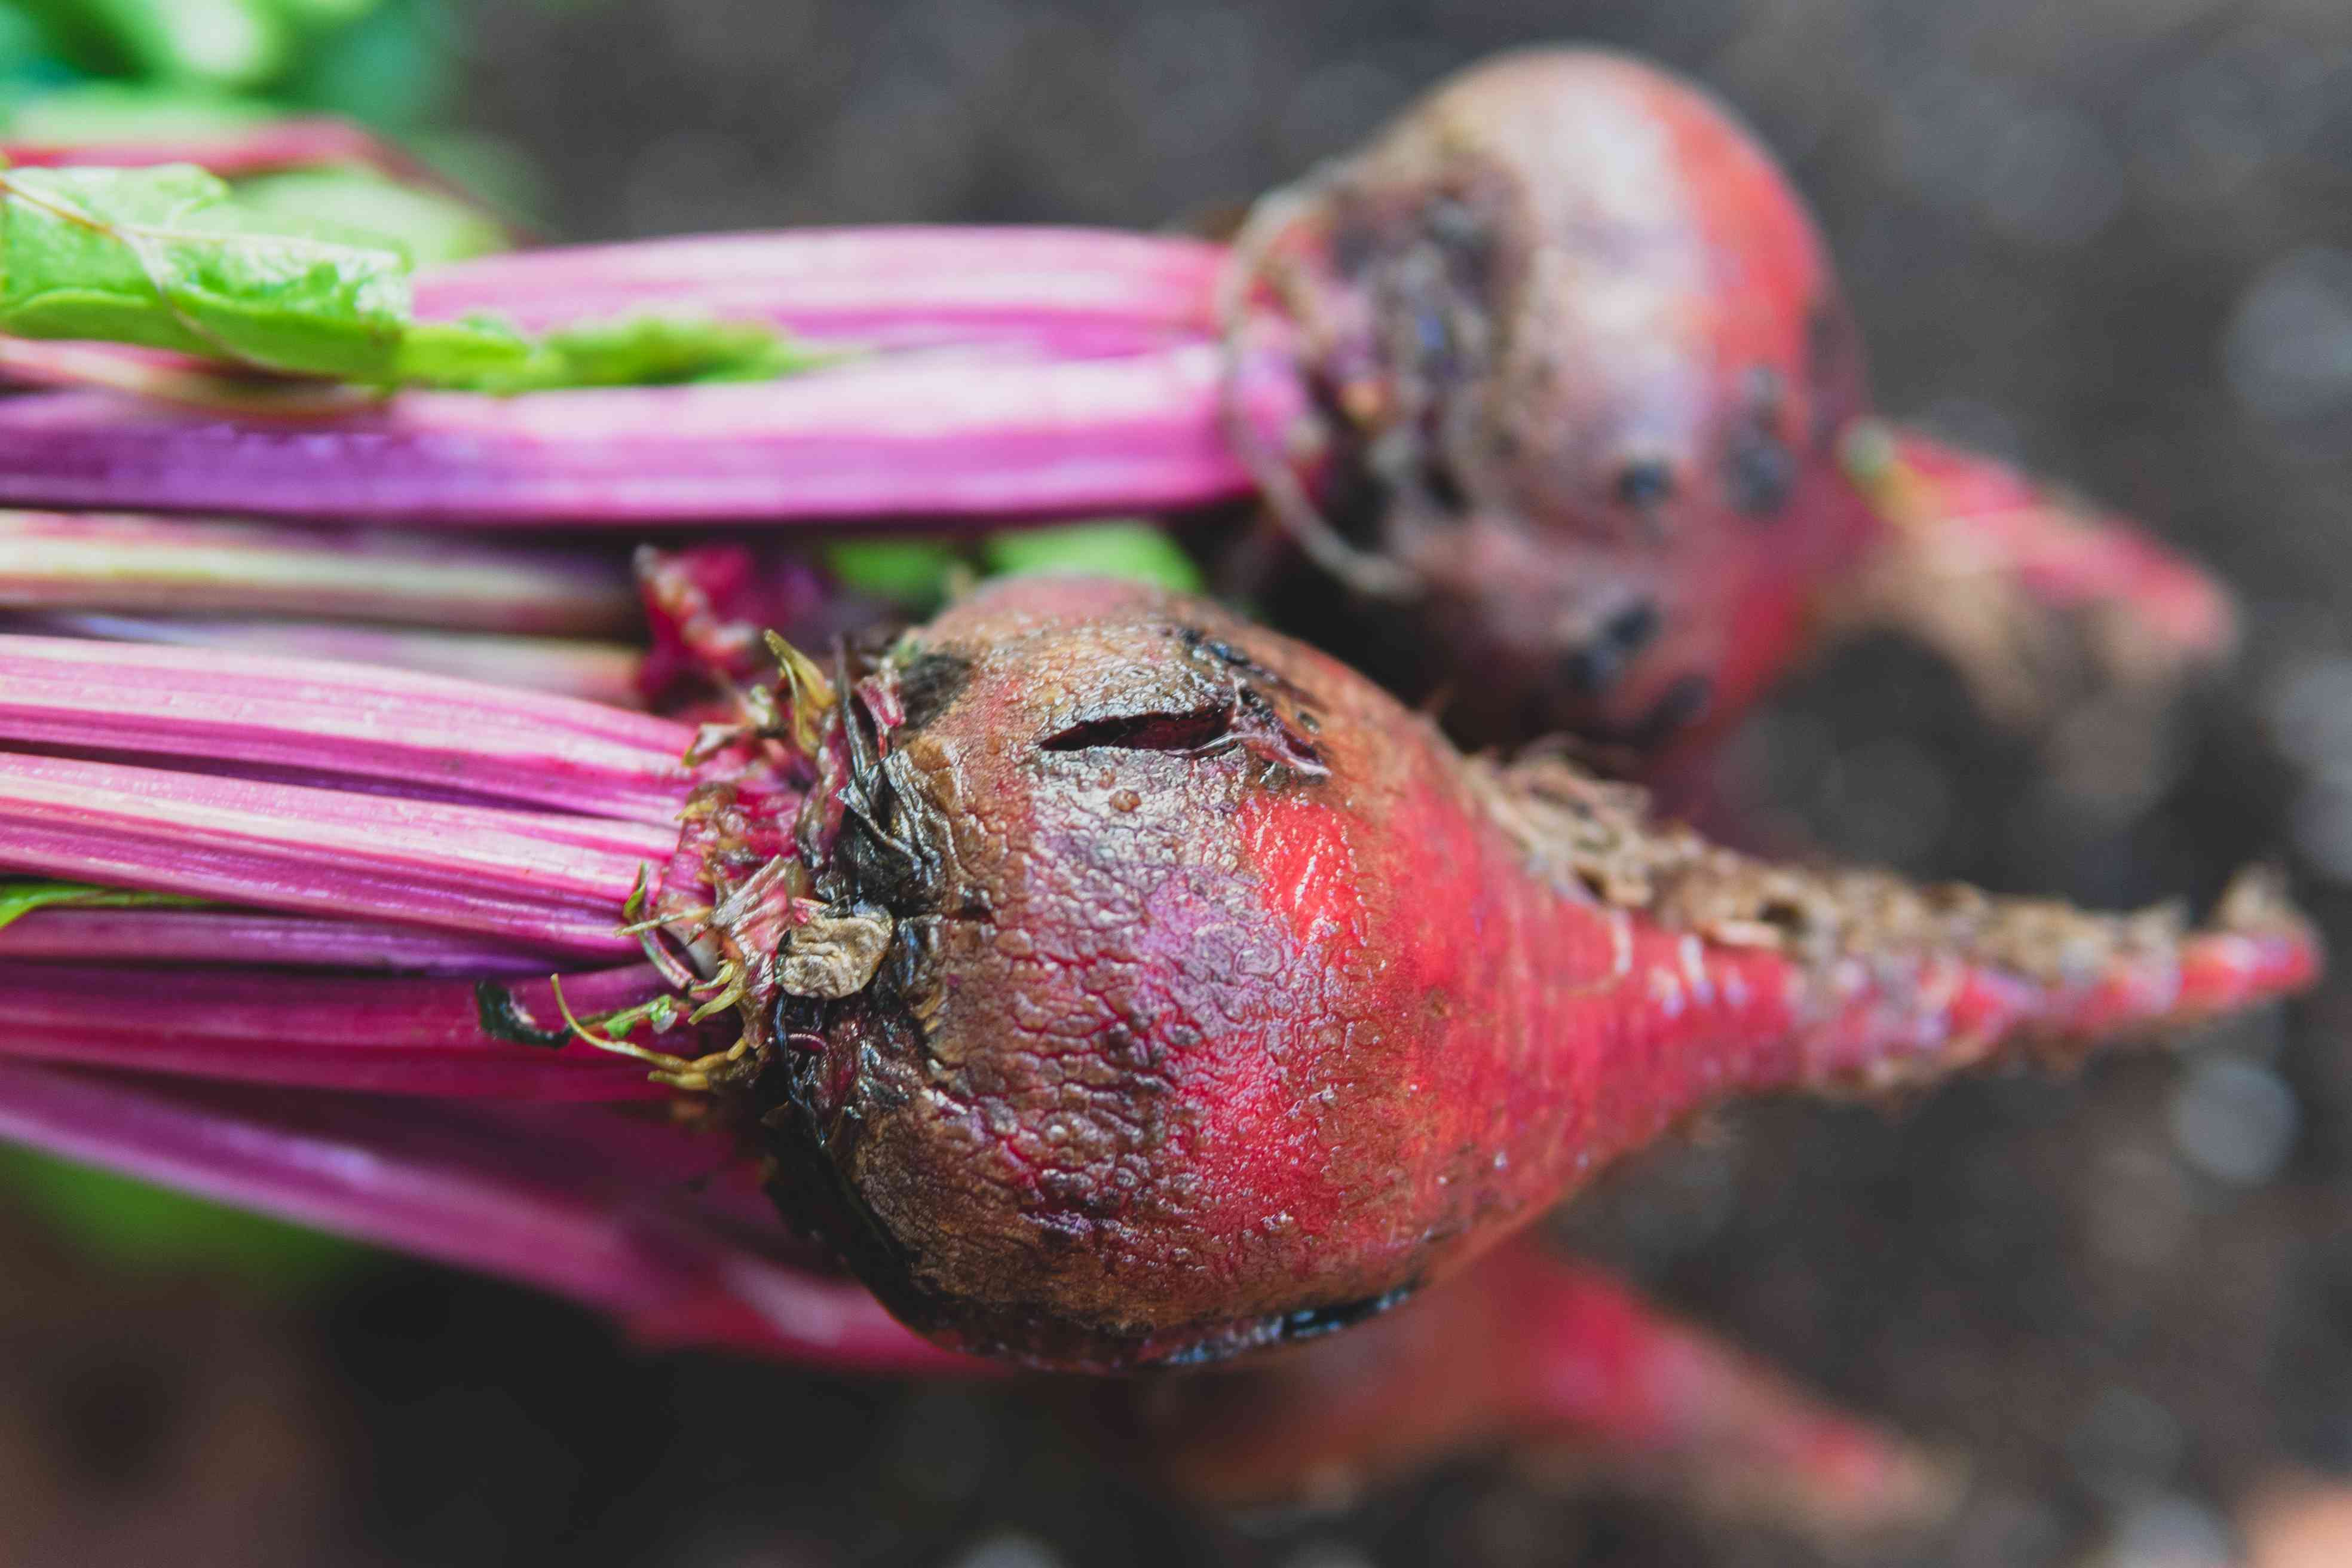 A handful of brilliant purple beets still attached to stalks and leaves.